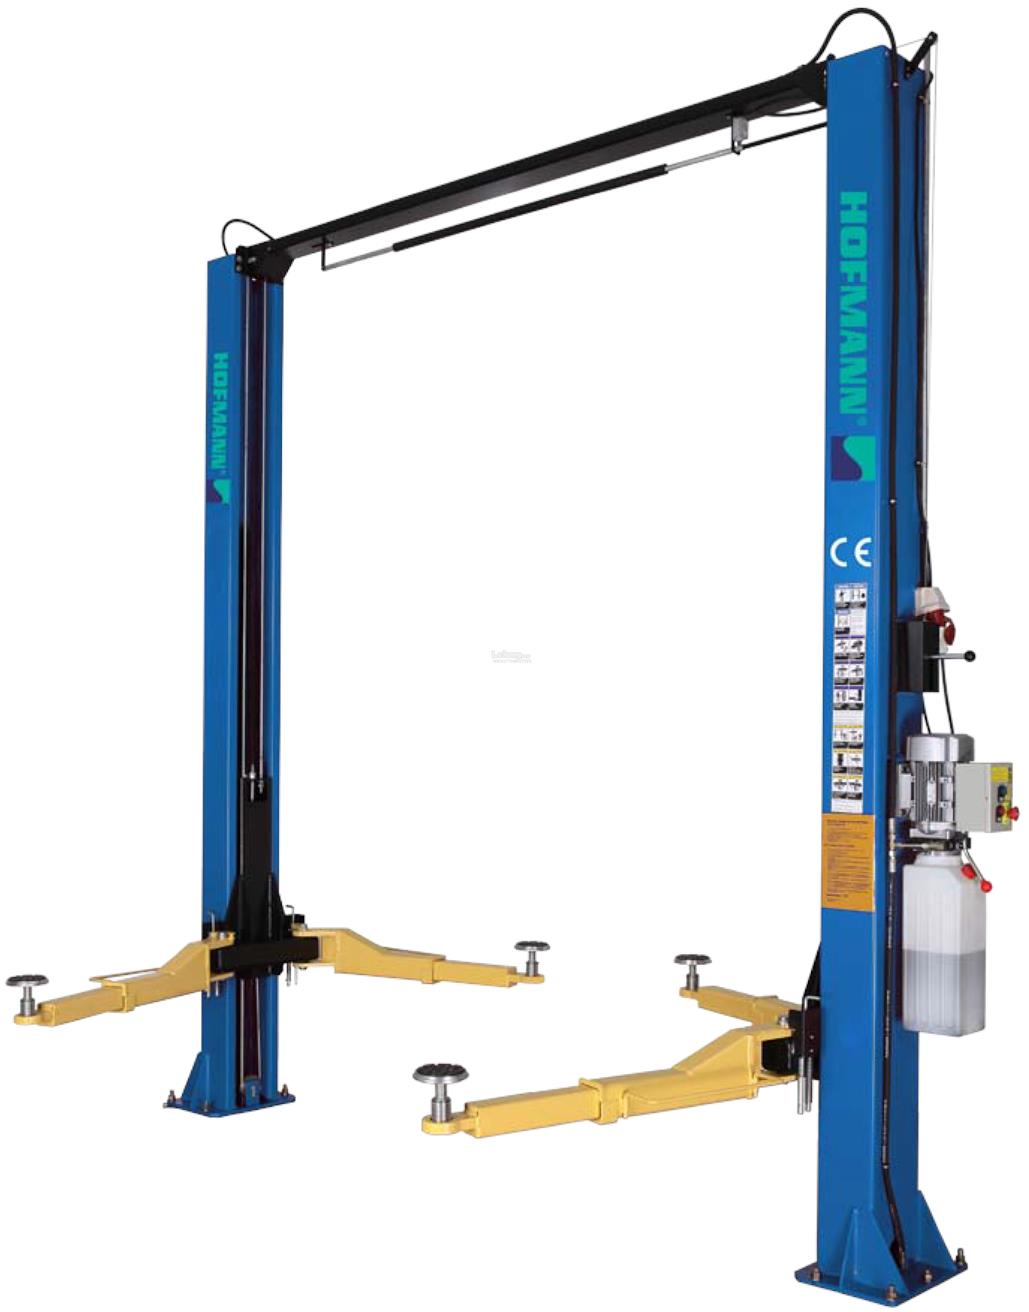 HOFMANN, 3.5ton 2-Post Lift, Car Lifts, Vehicle Hoist,Garage,Workshop